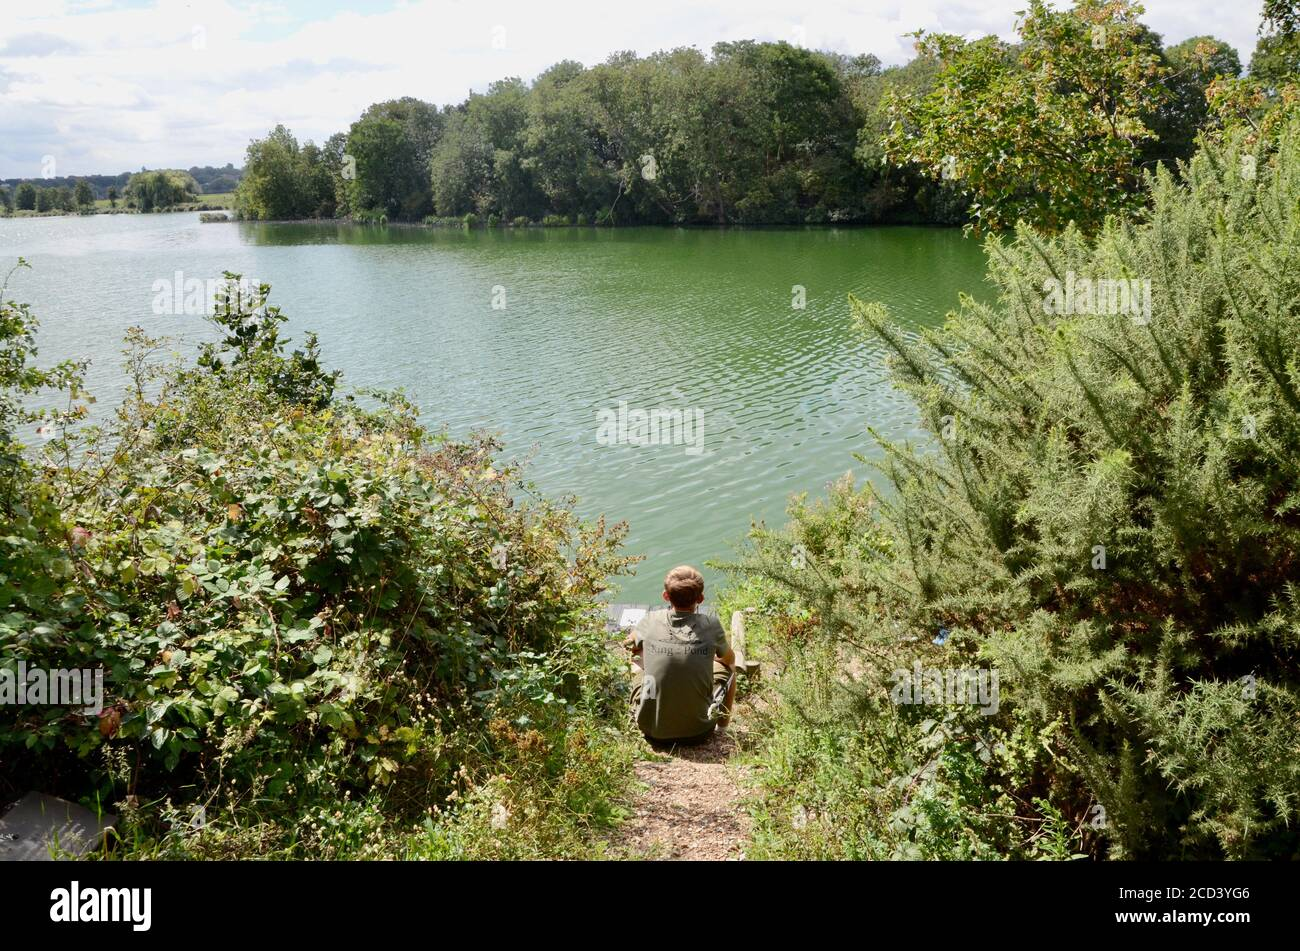 fisherman fishing at walthamstow wetlands reservoirs N17 ferry lane london england UK Stock Photo